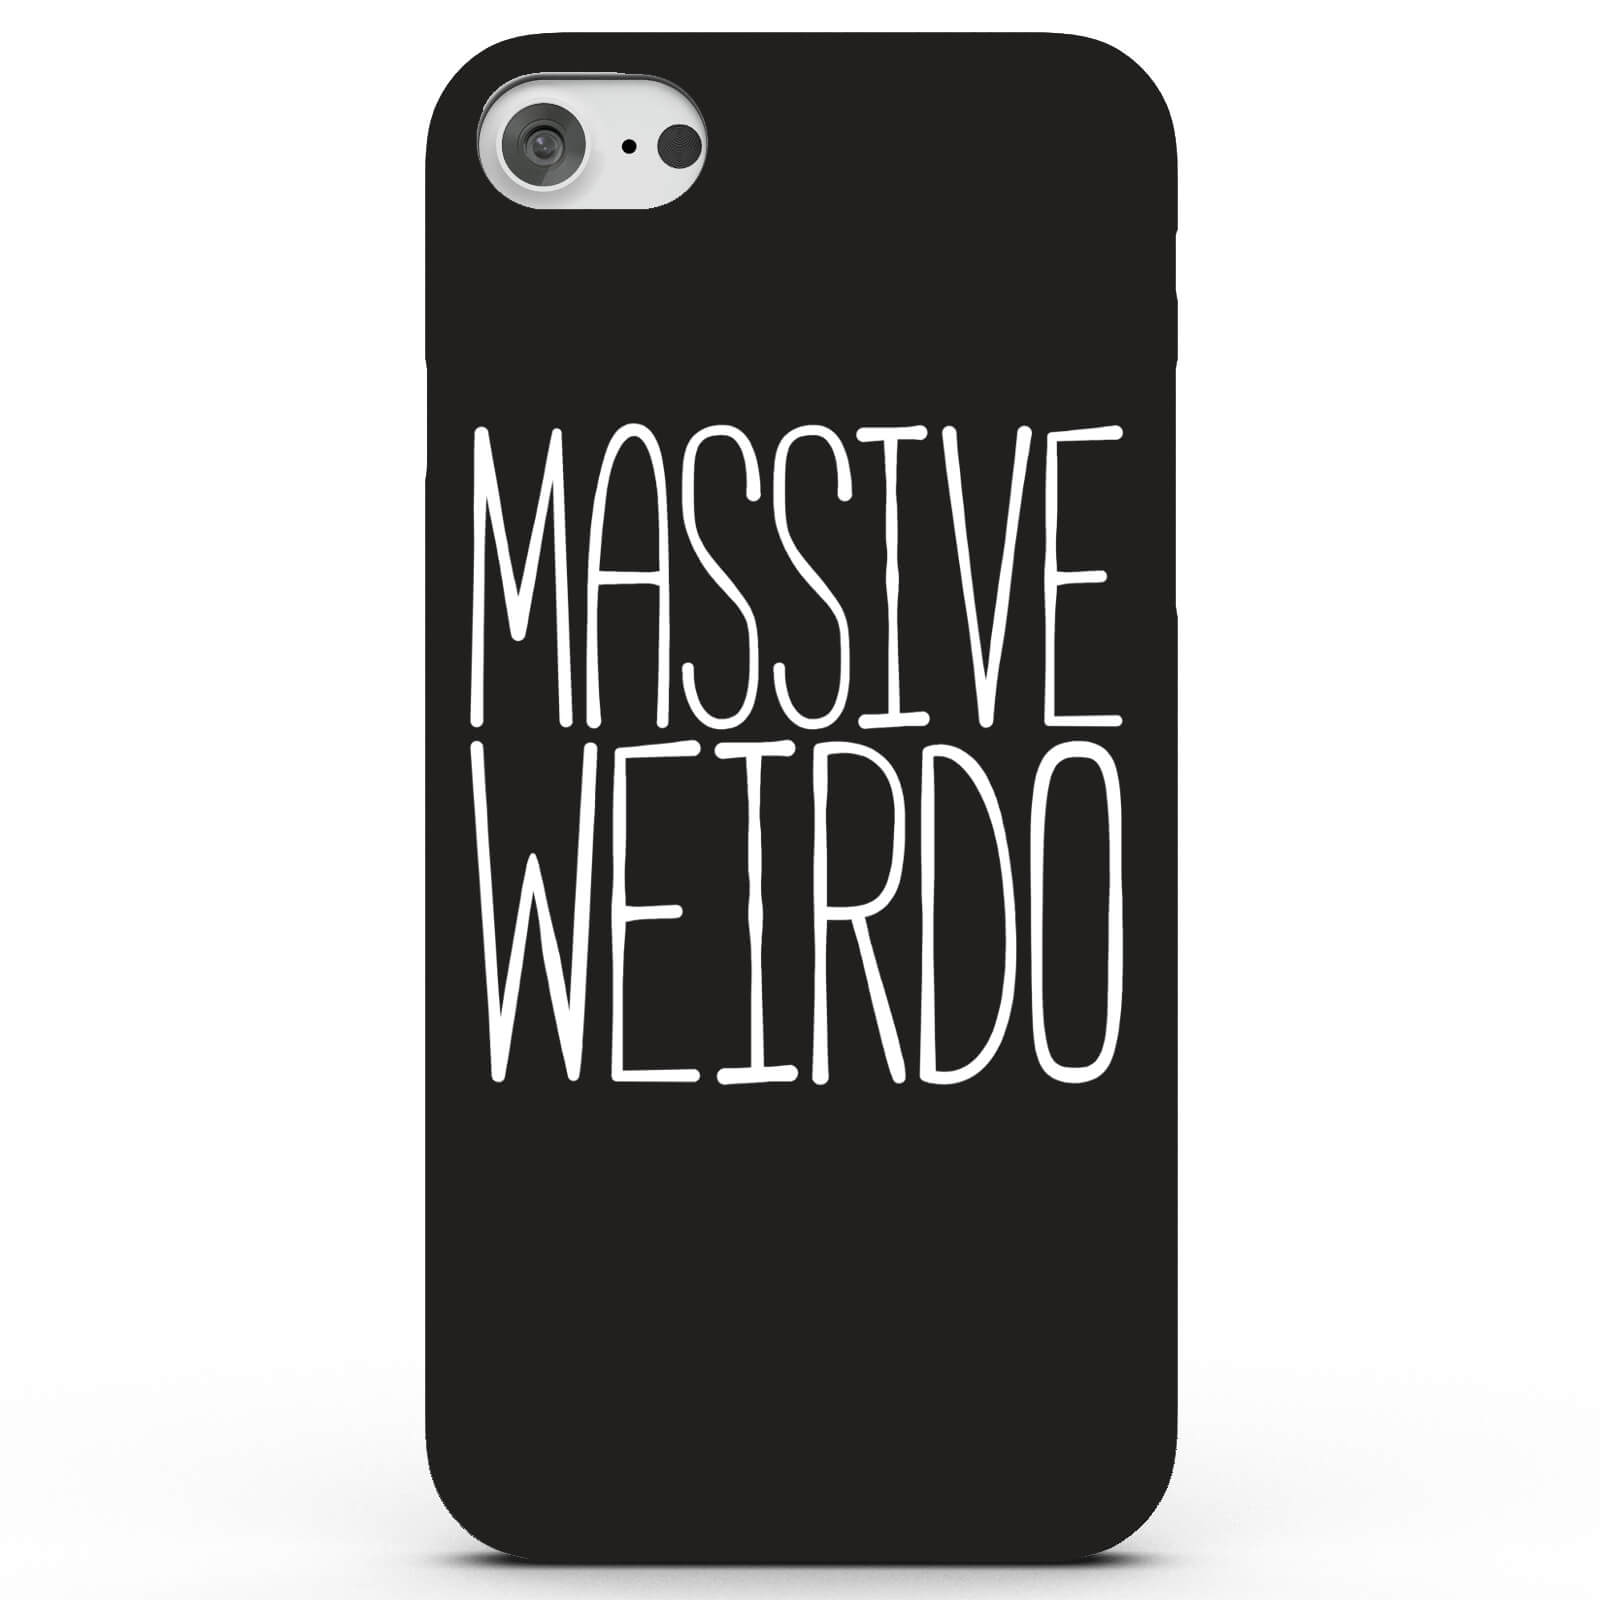 Massive Weirdo Phone Case for iPhone & Android - 4 Colours